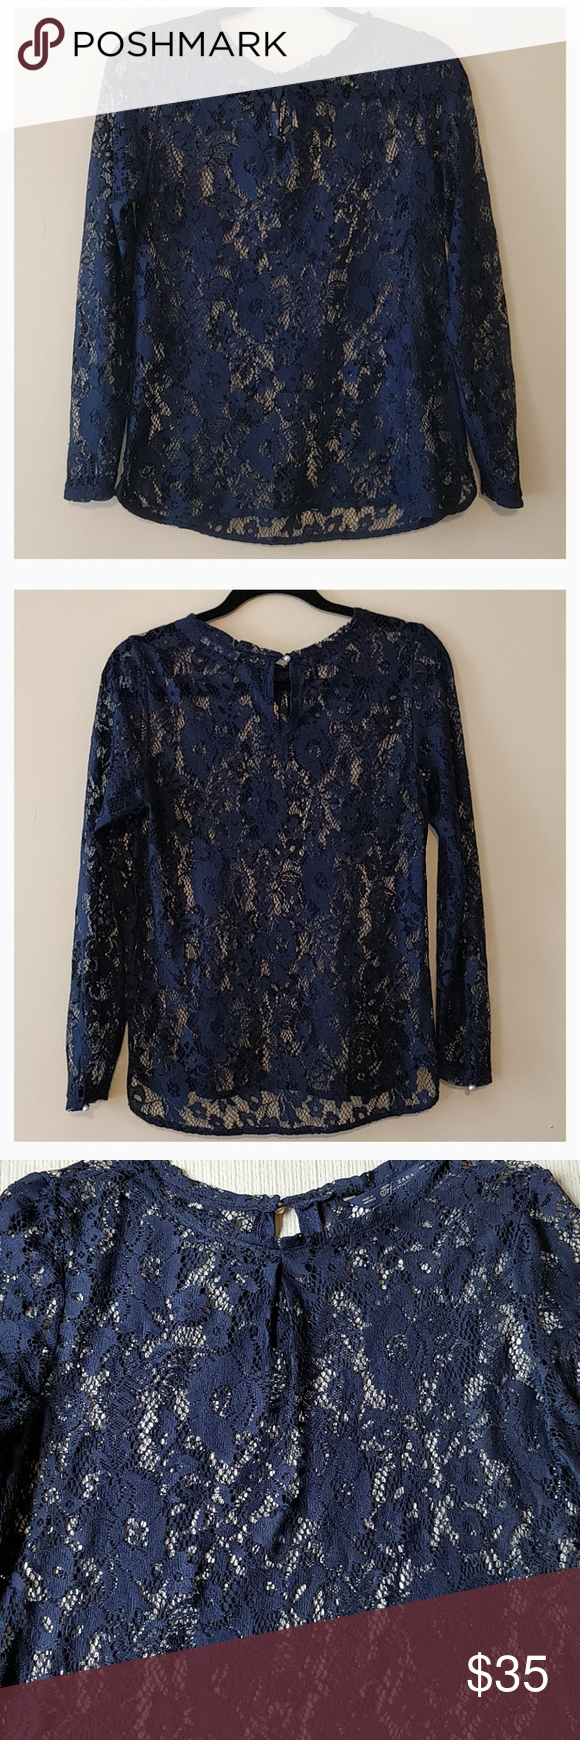 Zara Sheer Floral Lace Top Floral Lace Tops Lace Blouse Long Sleeve Floral Lace